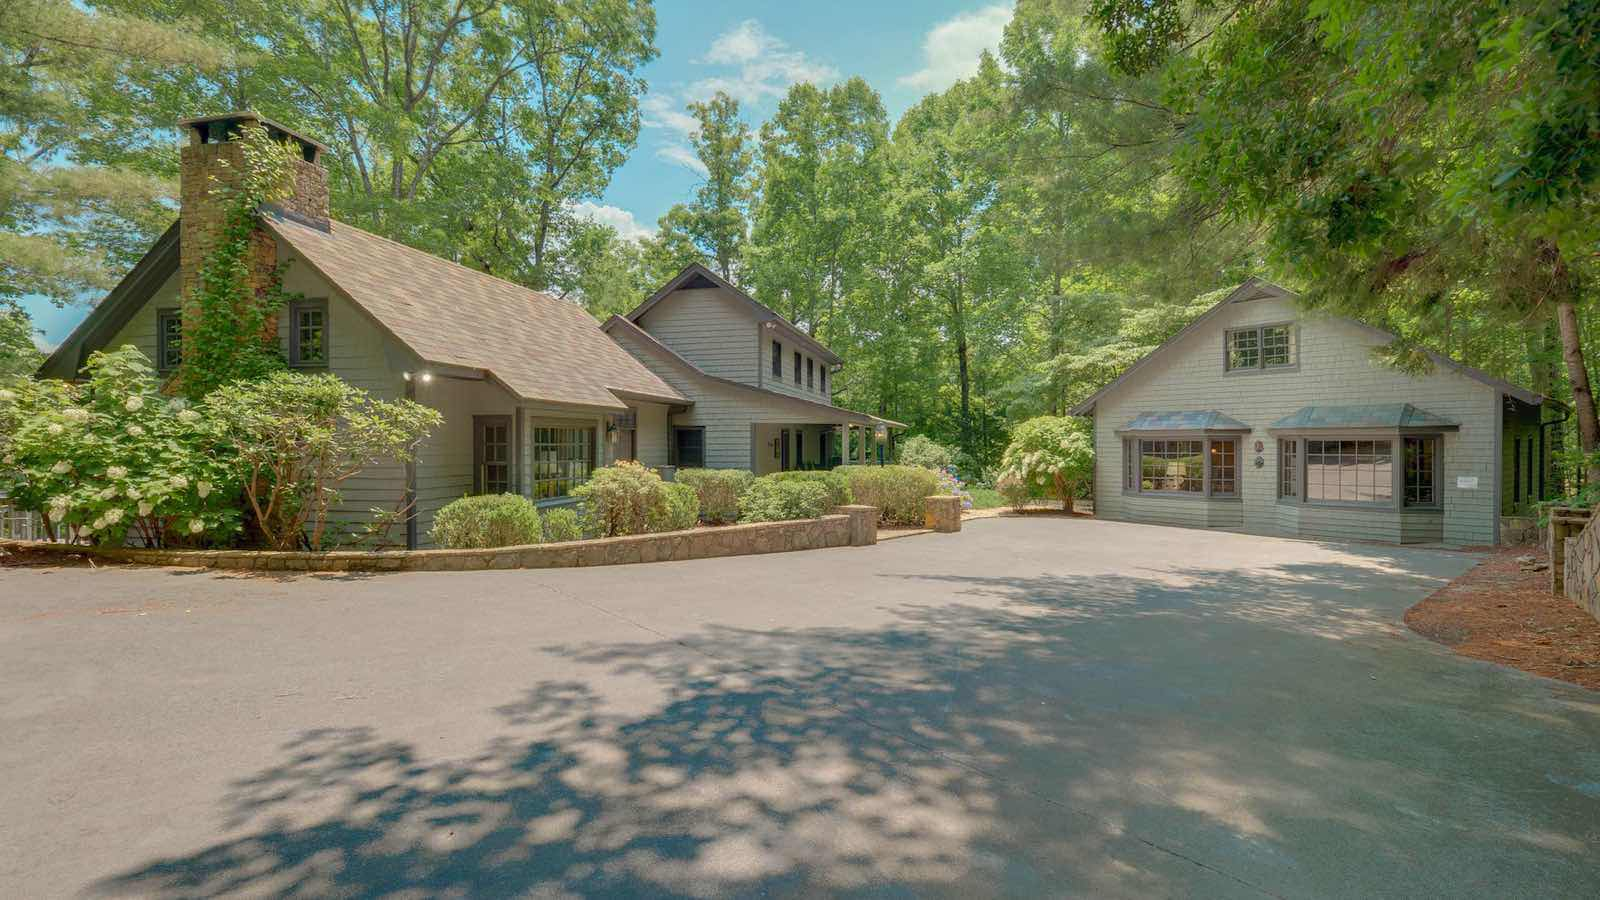 Gleesome inn on lake blue ridge rental cabin blue ridge ga for 8 bedroom cabins in blue ridge ga